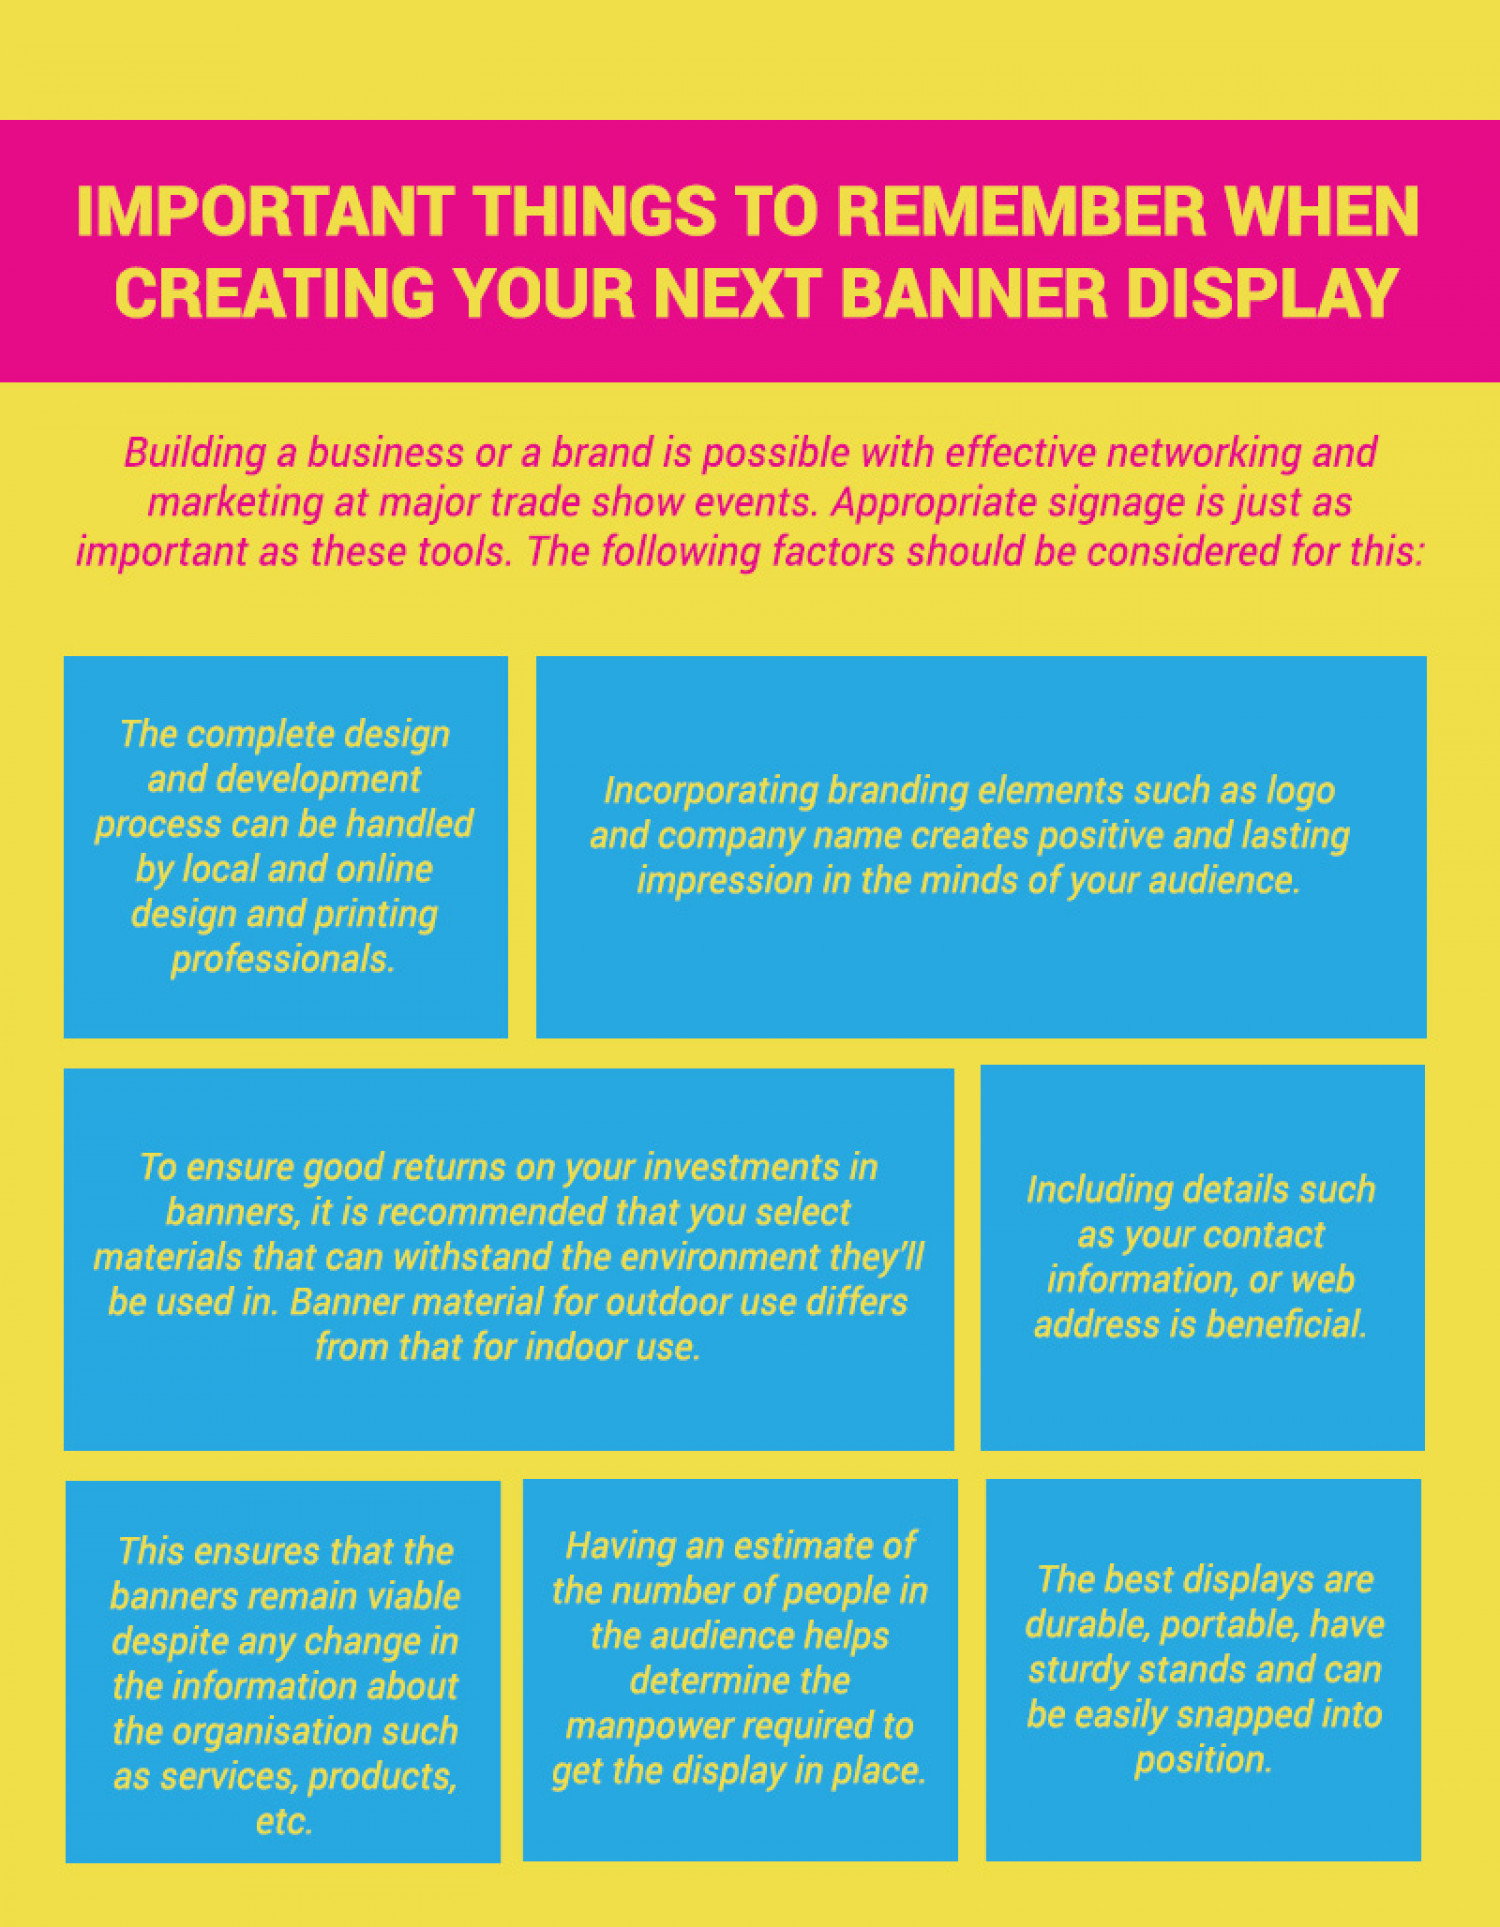 Important Things to Remember When Creating Your Next Banner Display Infographic